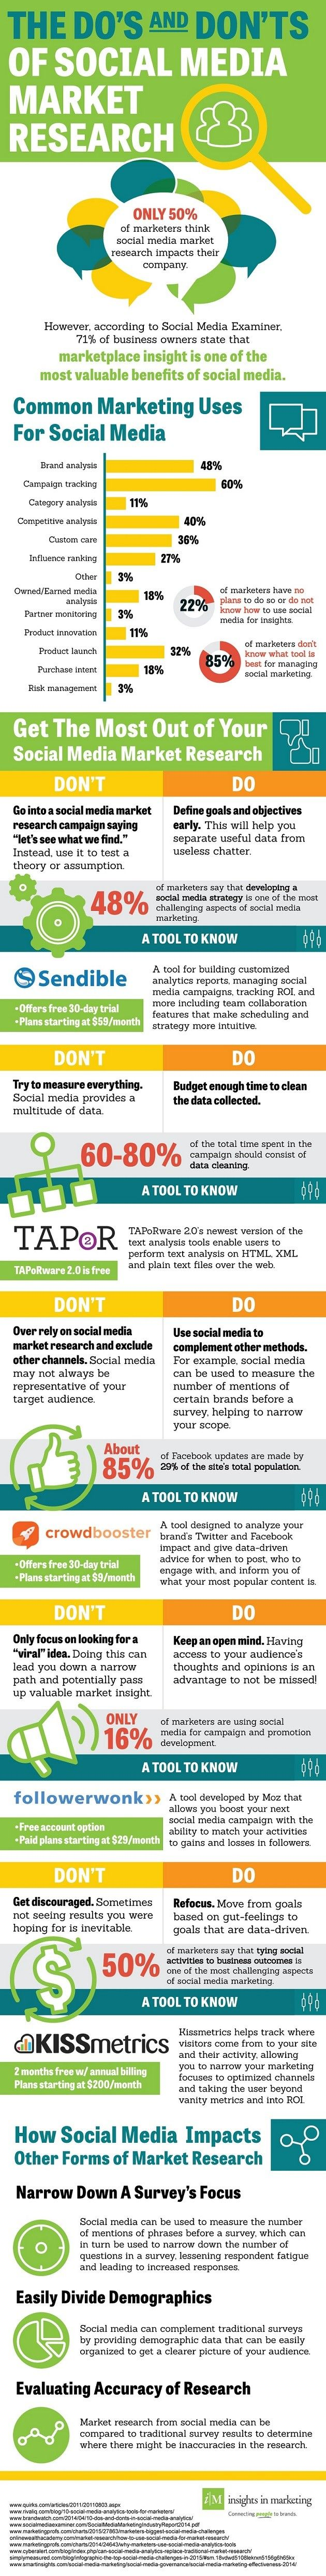 Social Media - The Do's and Don'ts of Social Media Research [Infographic] : MarketingProfs Article